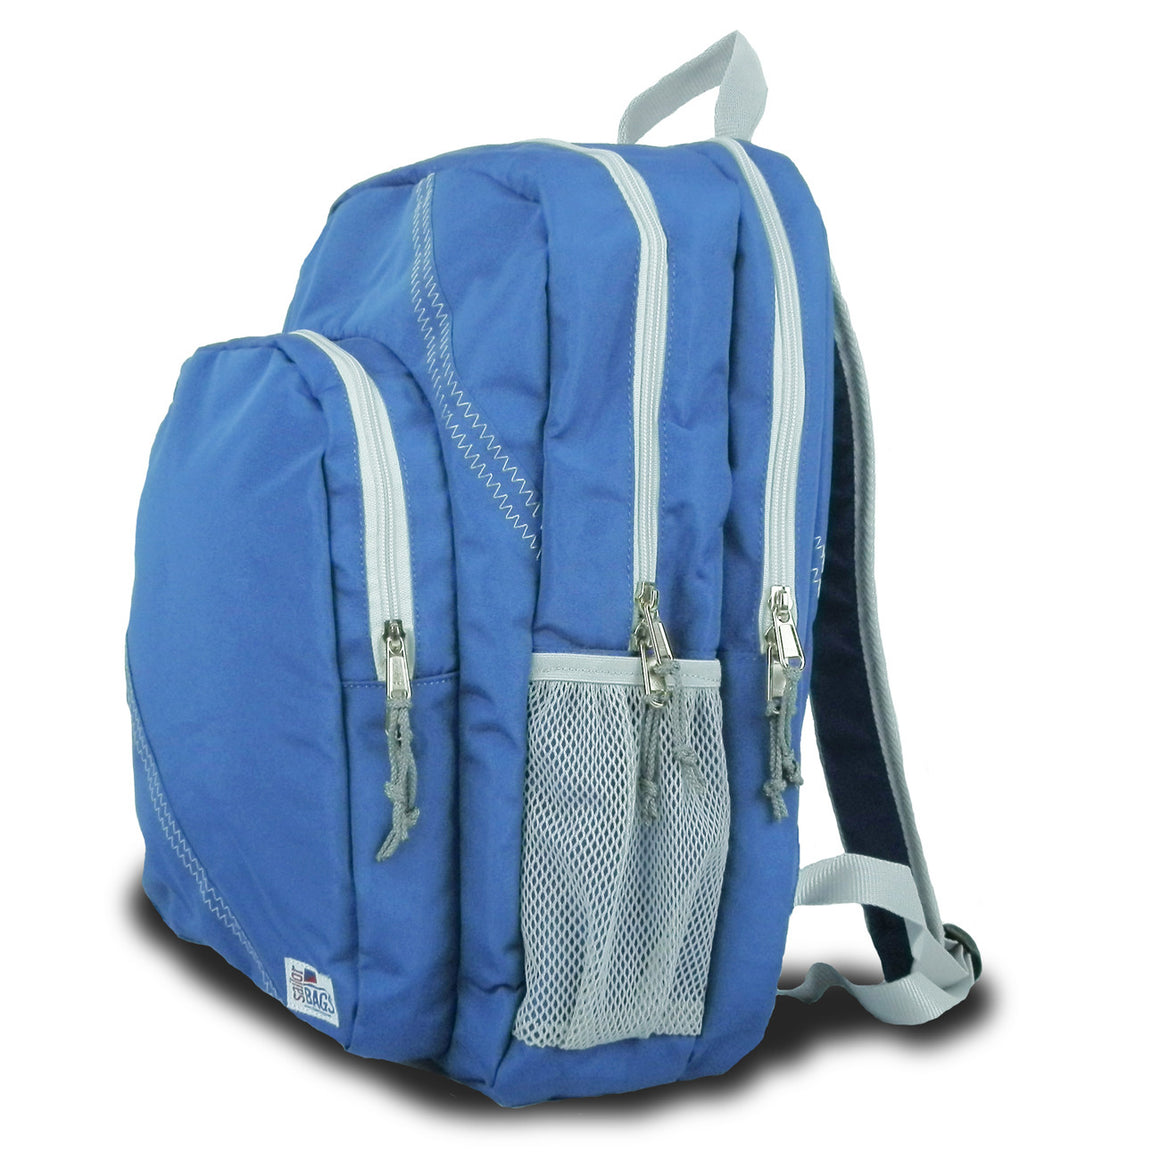 Chesapeake Backpack by SailorBags Nautical Blue w/ Grey Trim